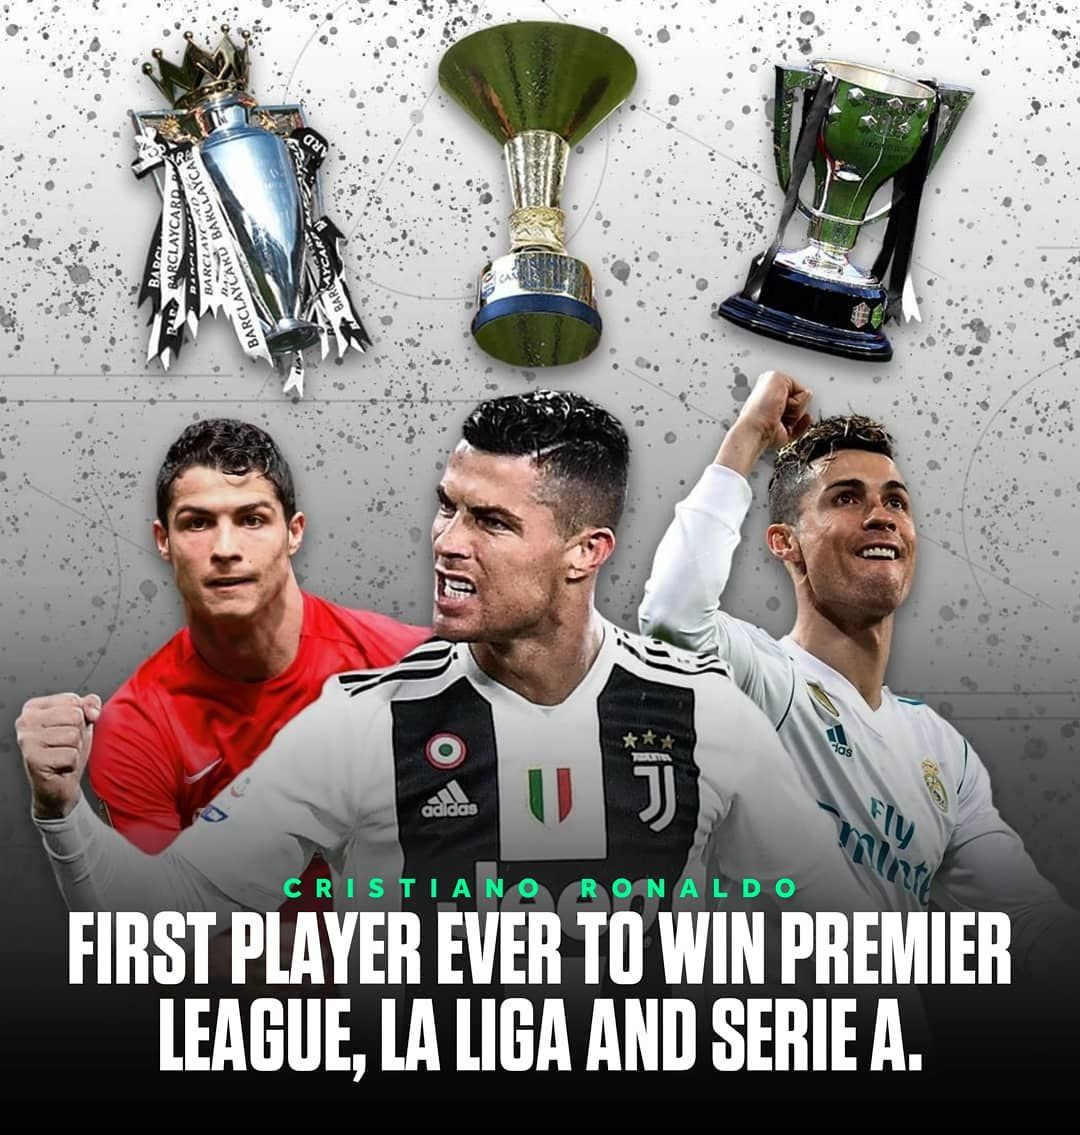 The First Player Ever To Win Premier League La Liga And Serie A